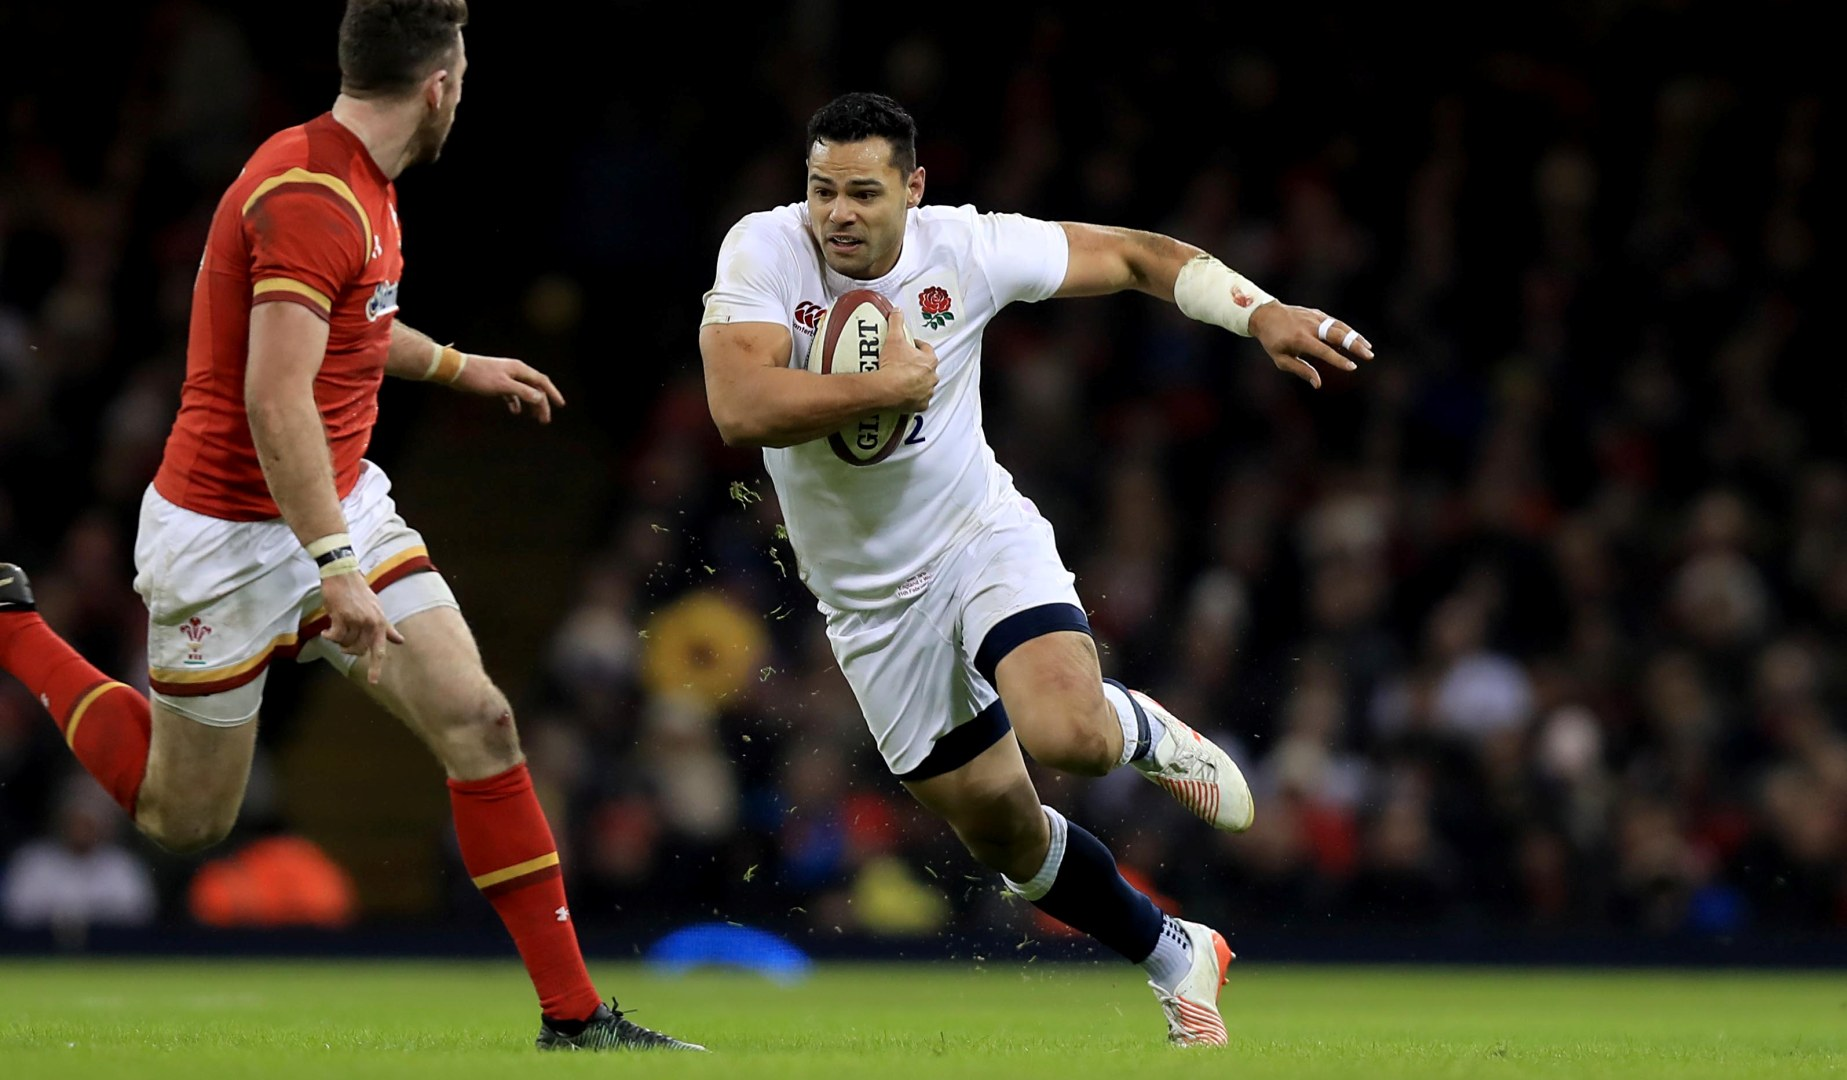 LionsWatch: Te'o partners Farrell in England midfield against Italy